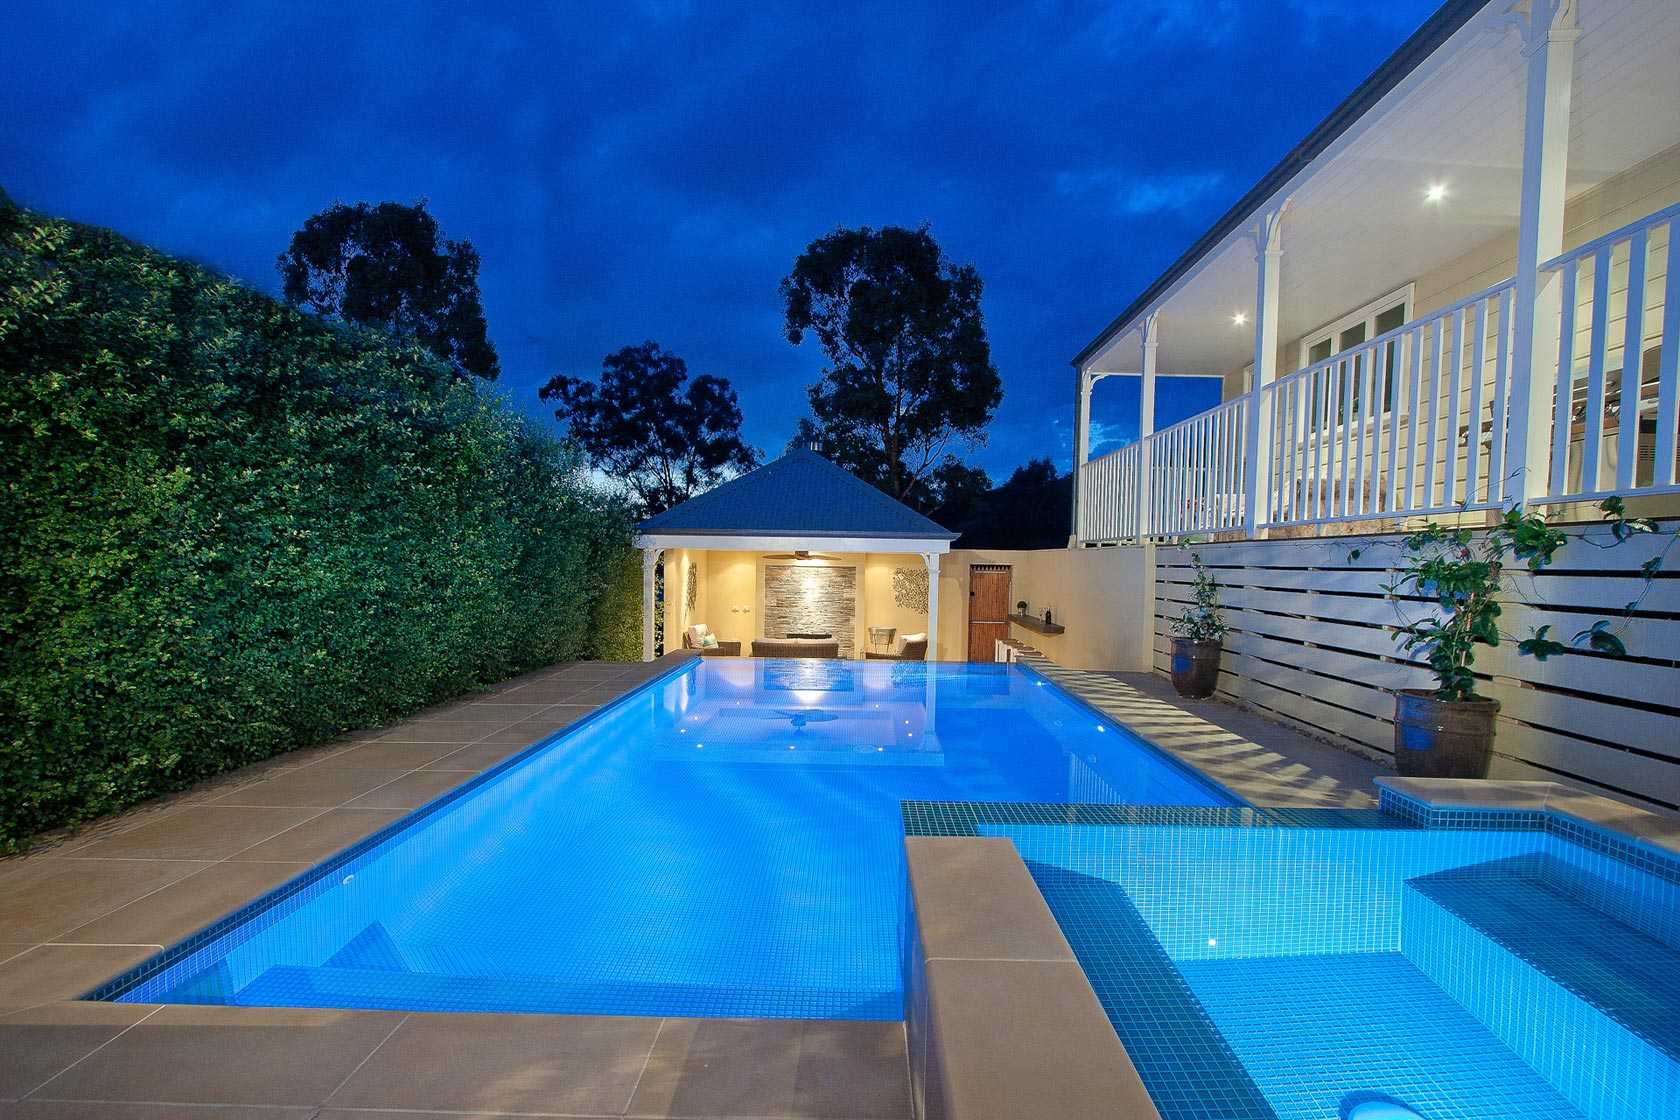 Landscape pool designs melbourne pdf for Landscape design melbourne